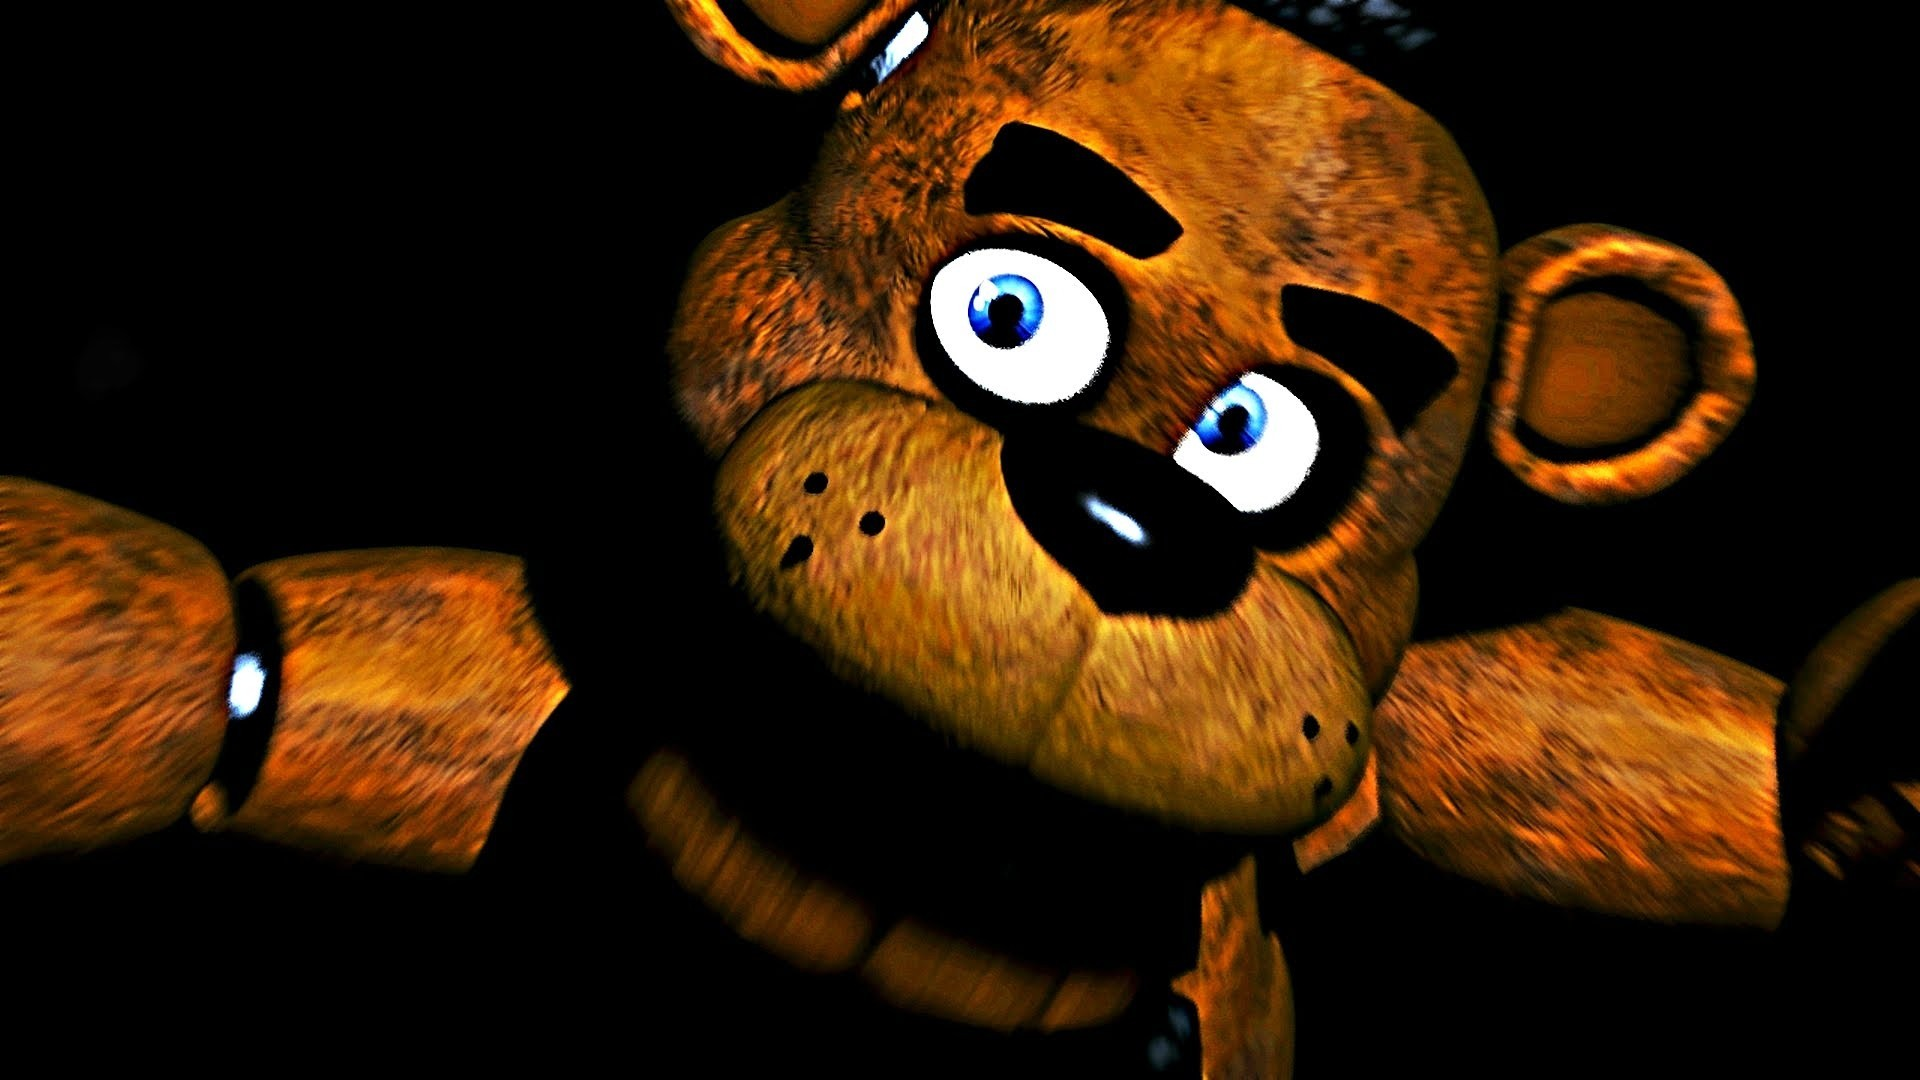 Res: 1920x1080, Five Nights At Freddy's wallpaper